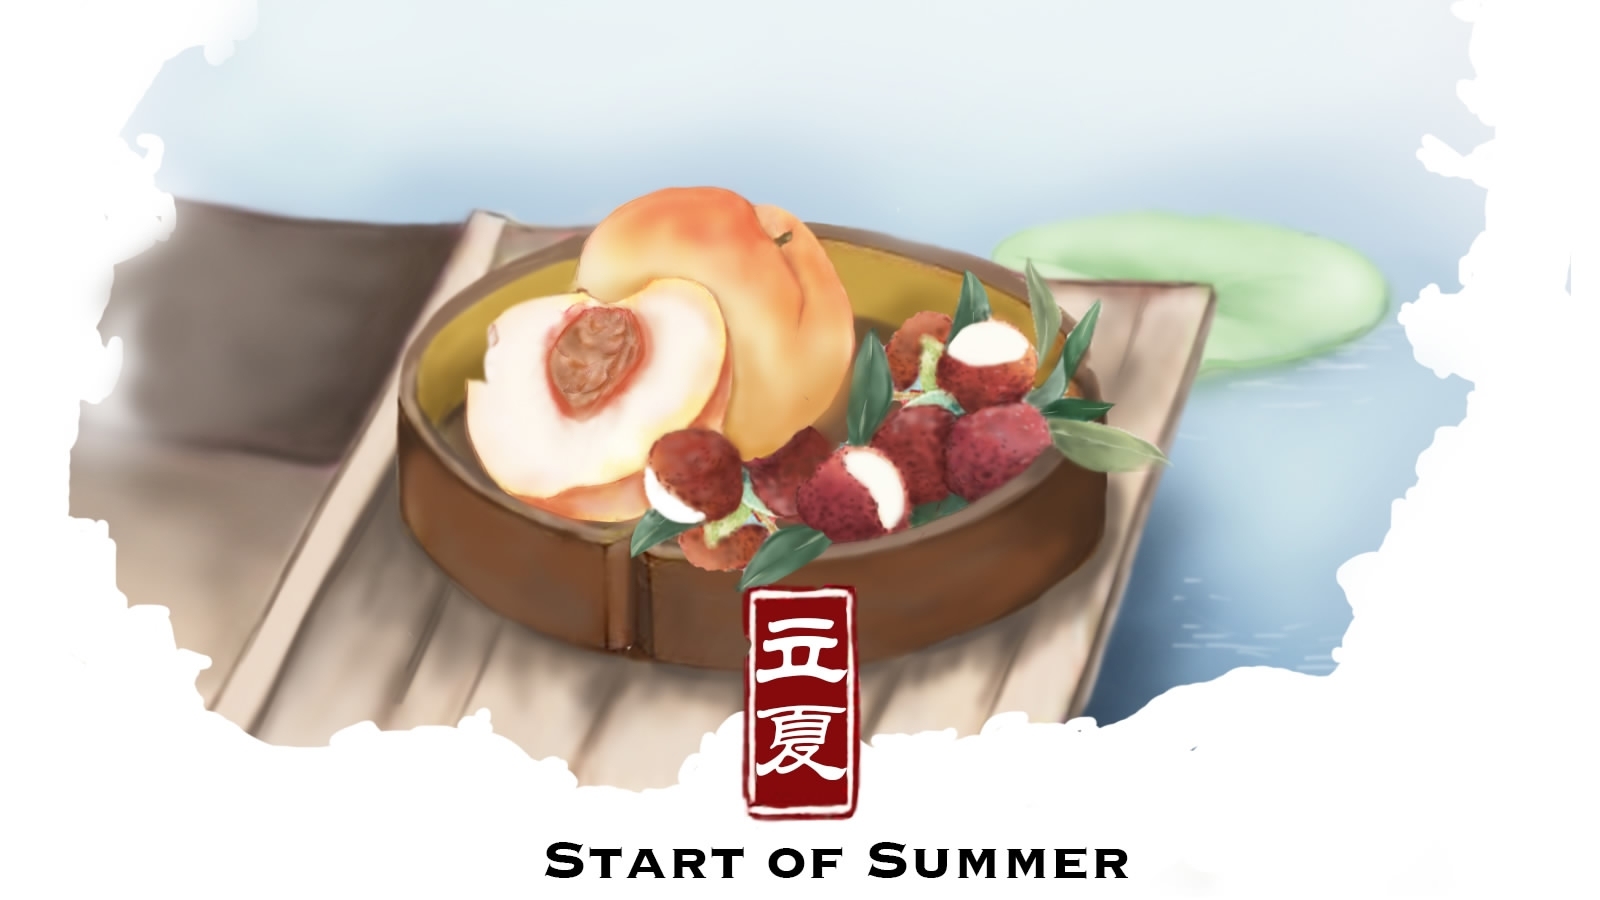 Start of Summer: Heading towards the prime of the year